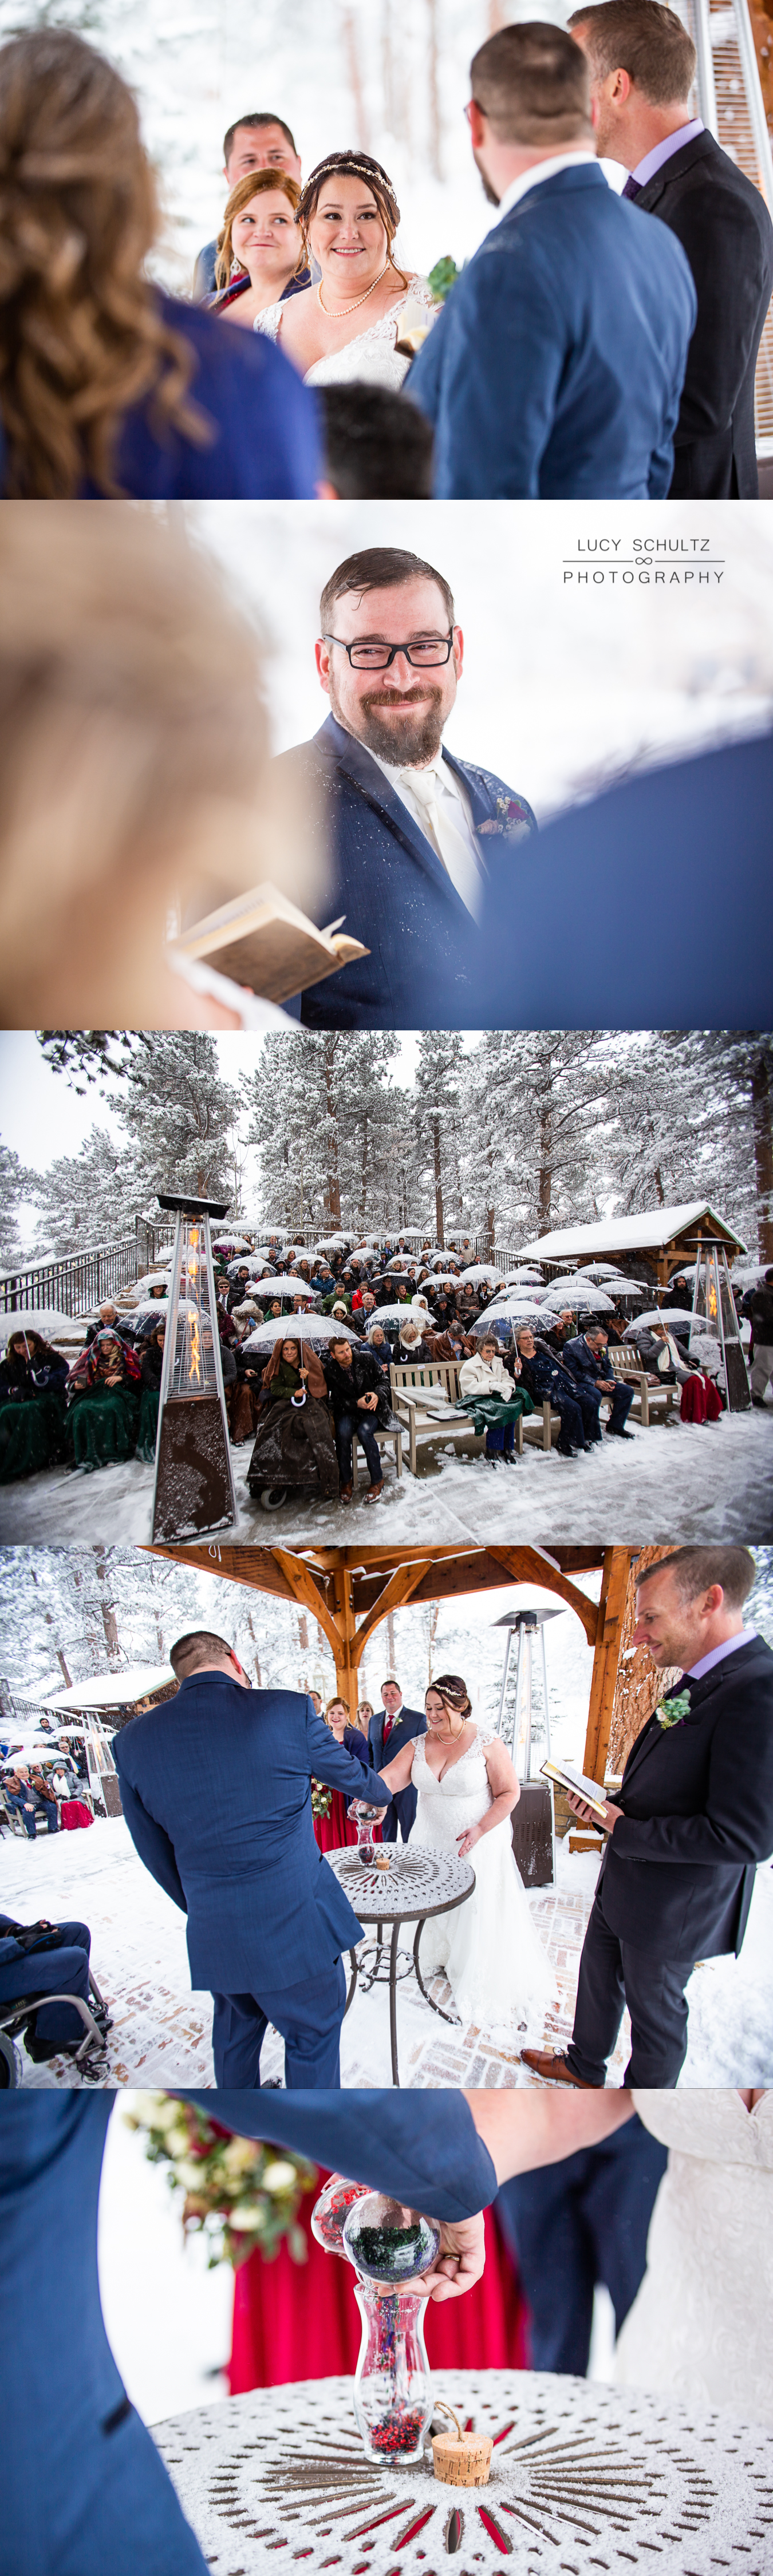 17OutdoorWeddingCeremonyDellaTerraWinterPhotographer